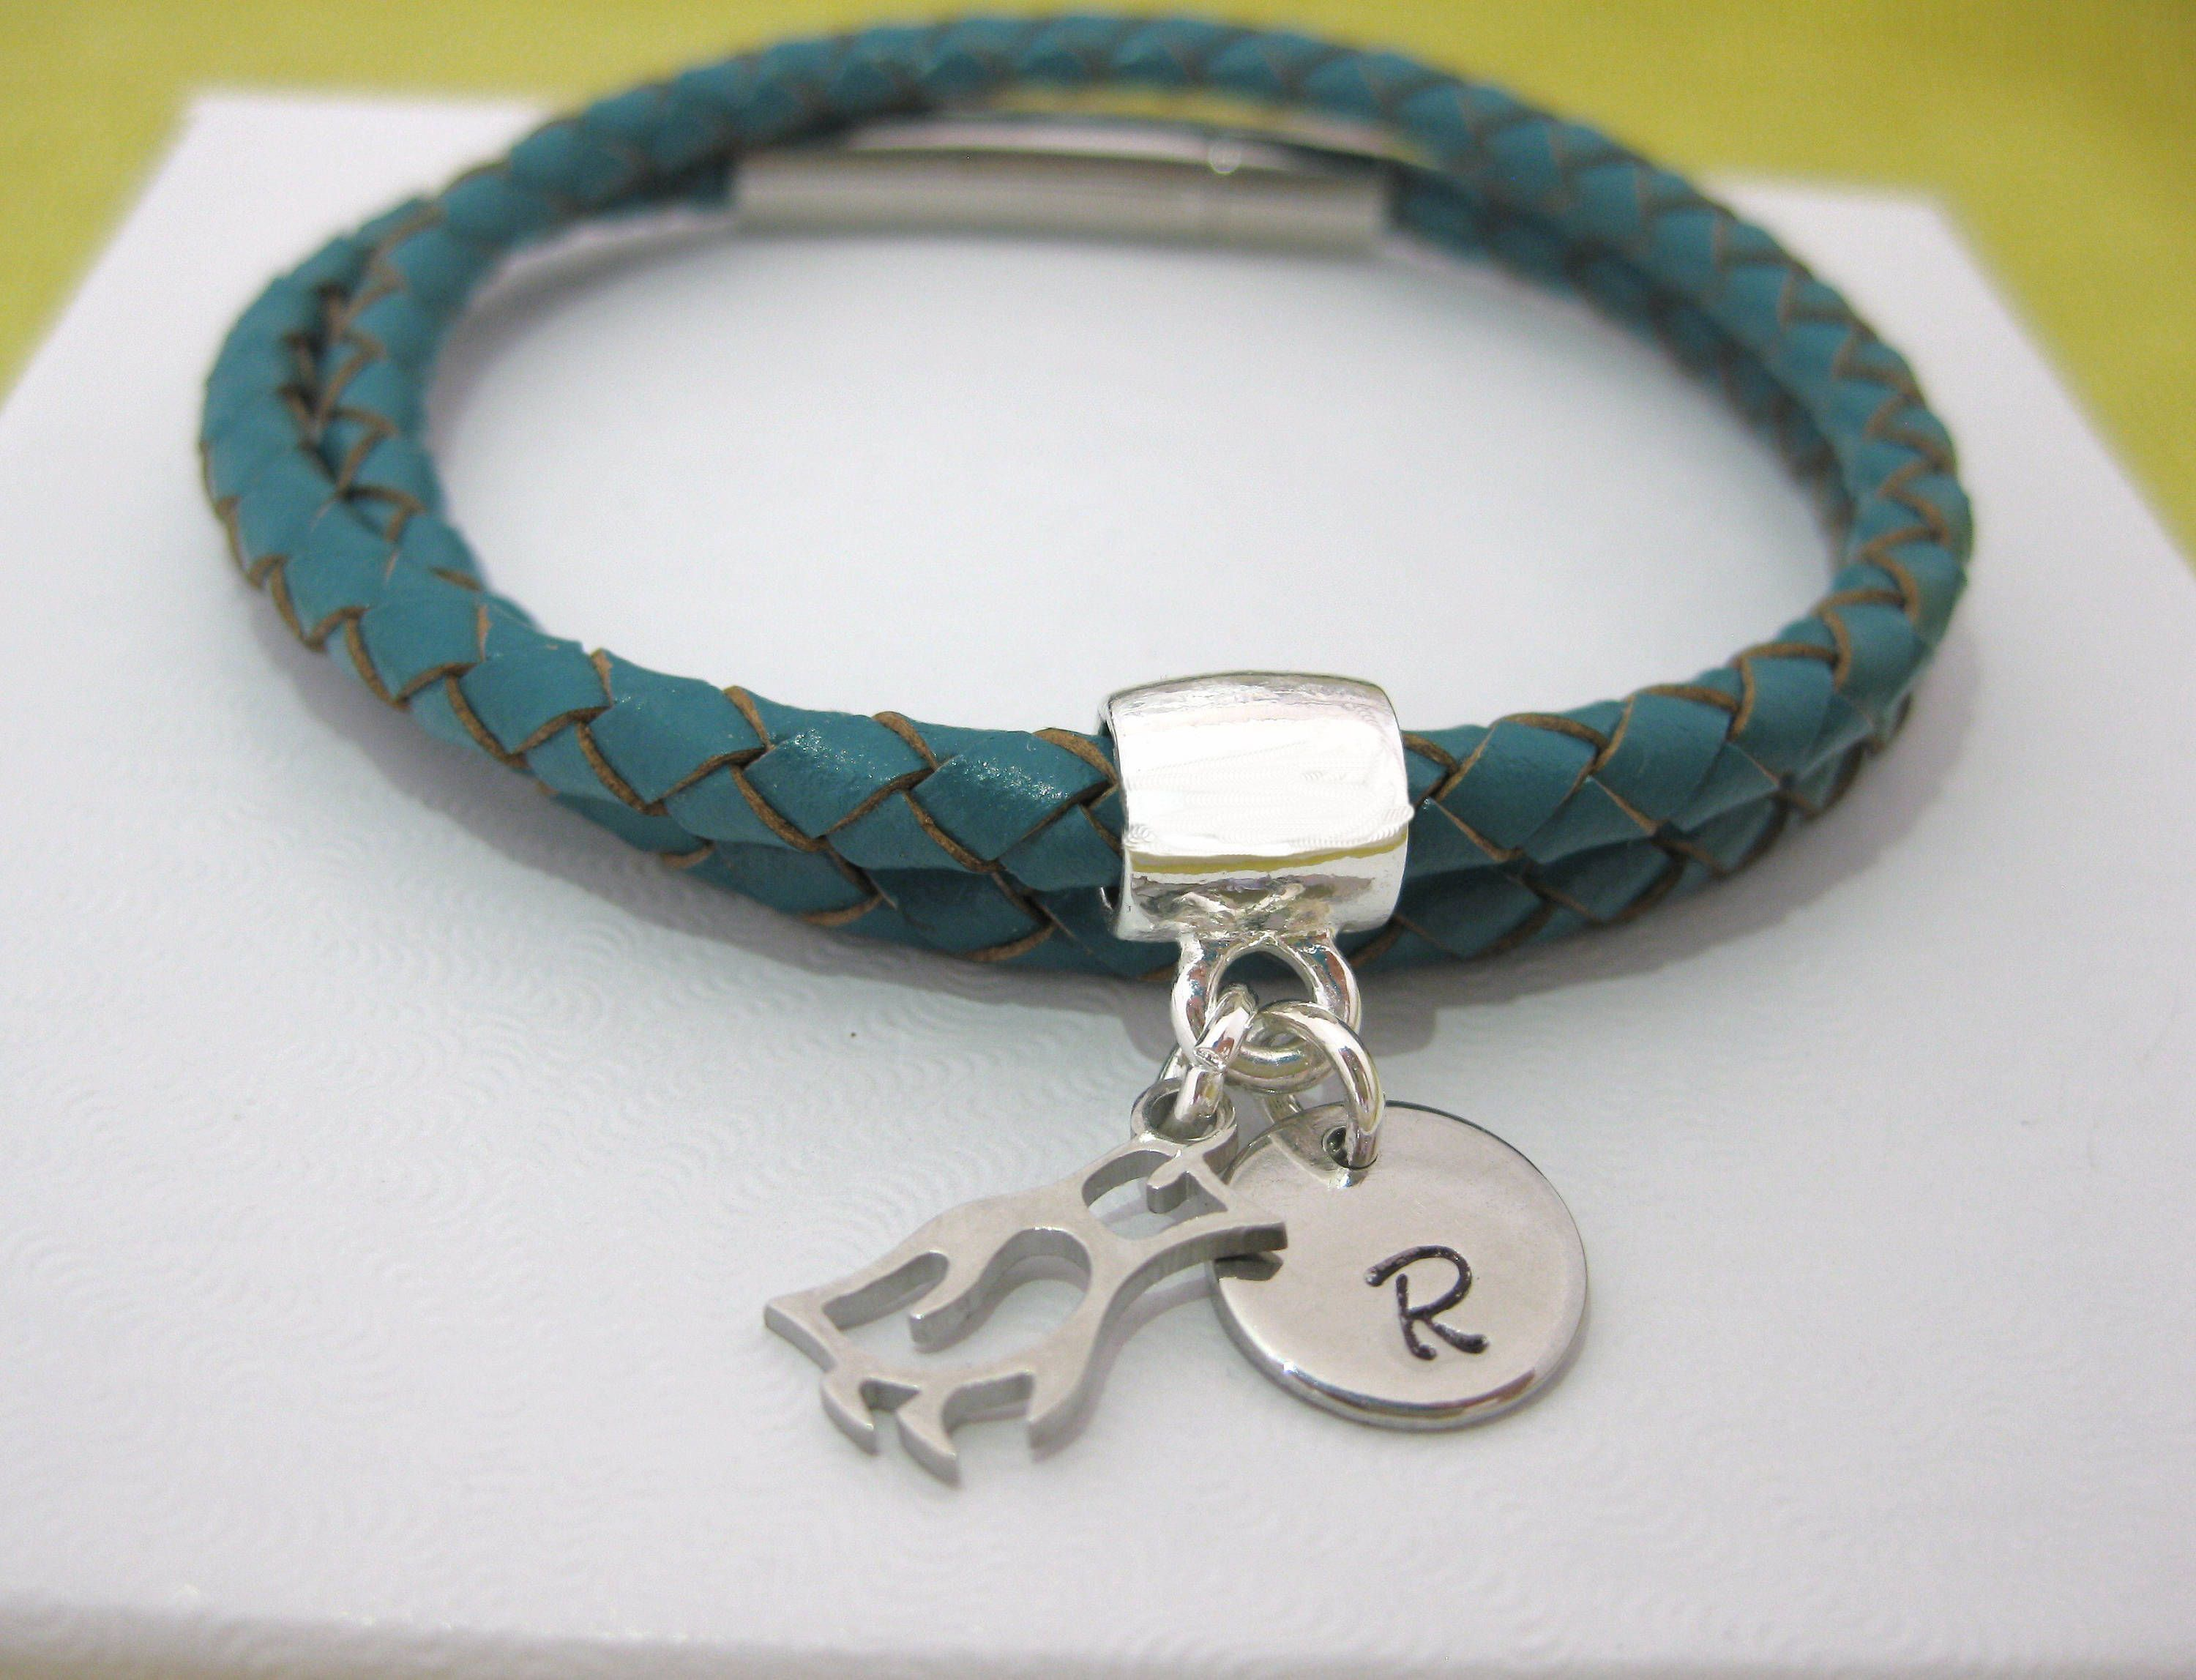 Personalised 4mm Braided Leather Teal Double Wrap Bracelet Initial Charm Magnetic Clasp Uk Er By Pendant4yourthoughts On Etsy